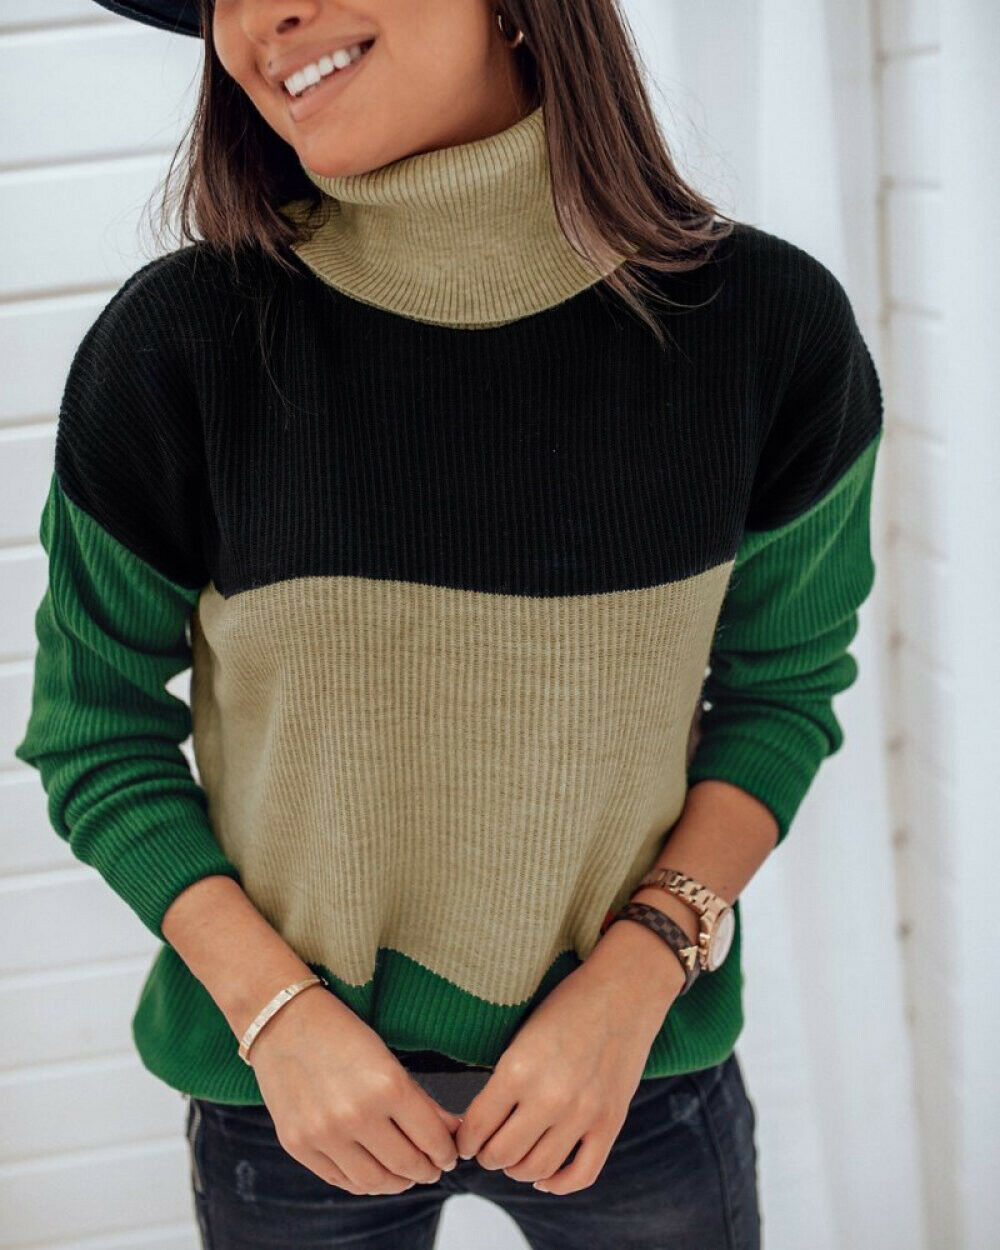 Women's Sweaters Turtlenck Long Sleeve dark green splice Knitted Jumper Knitwear Winter Outwear Tops jersey mujer